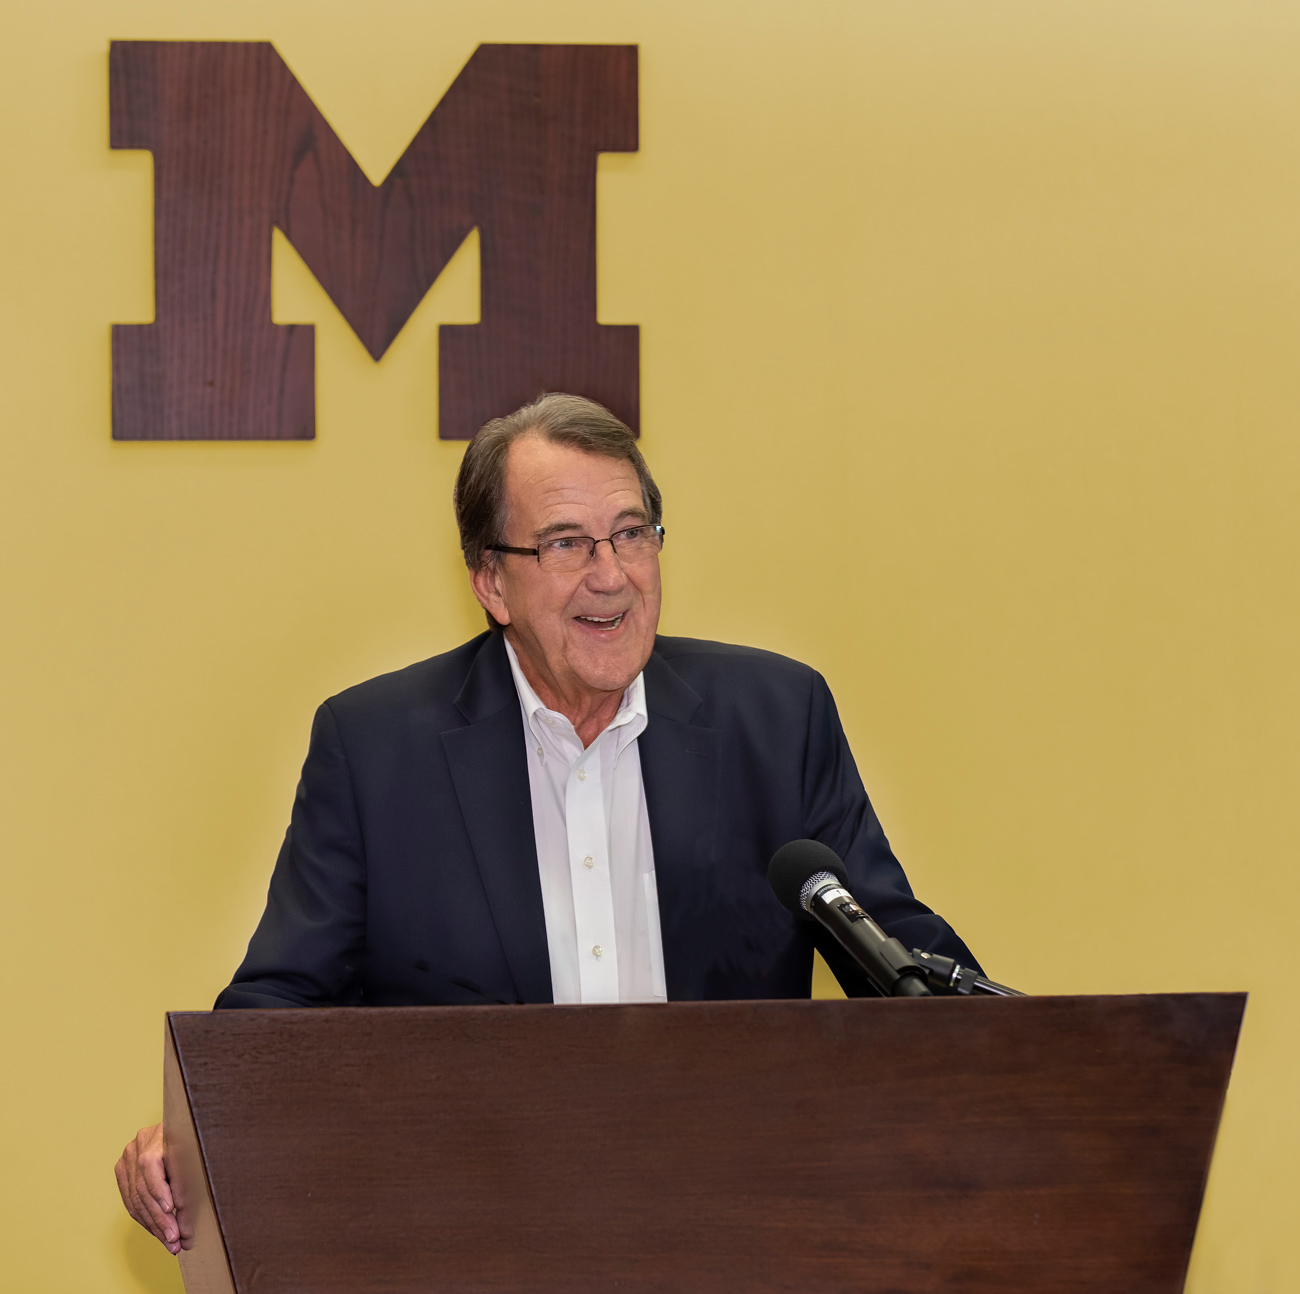 photo of football coach Lloyd Carr U of M